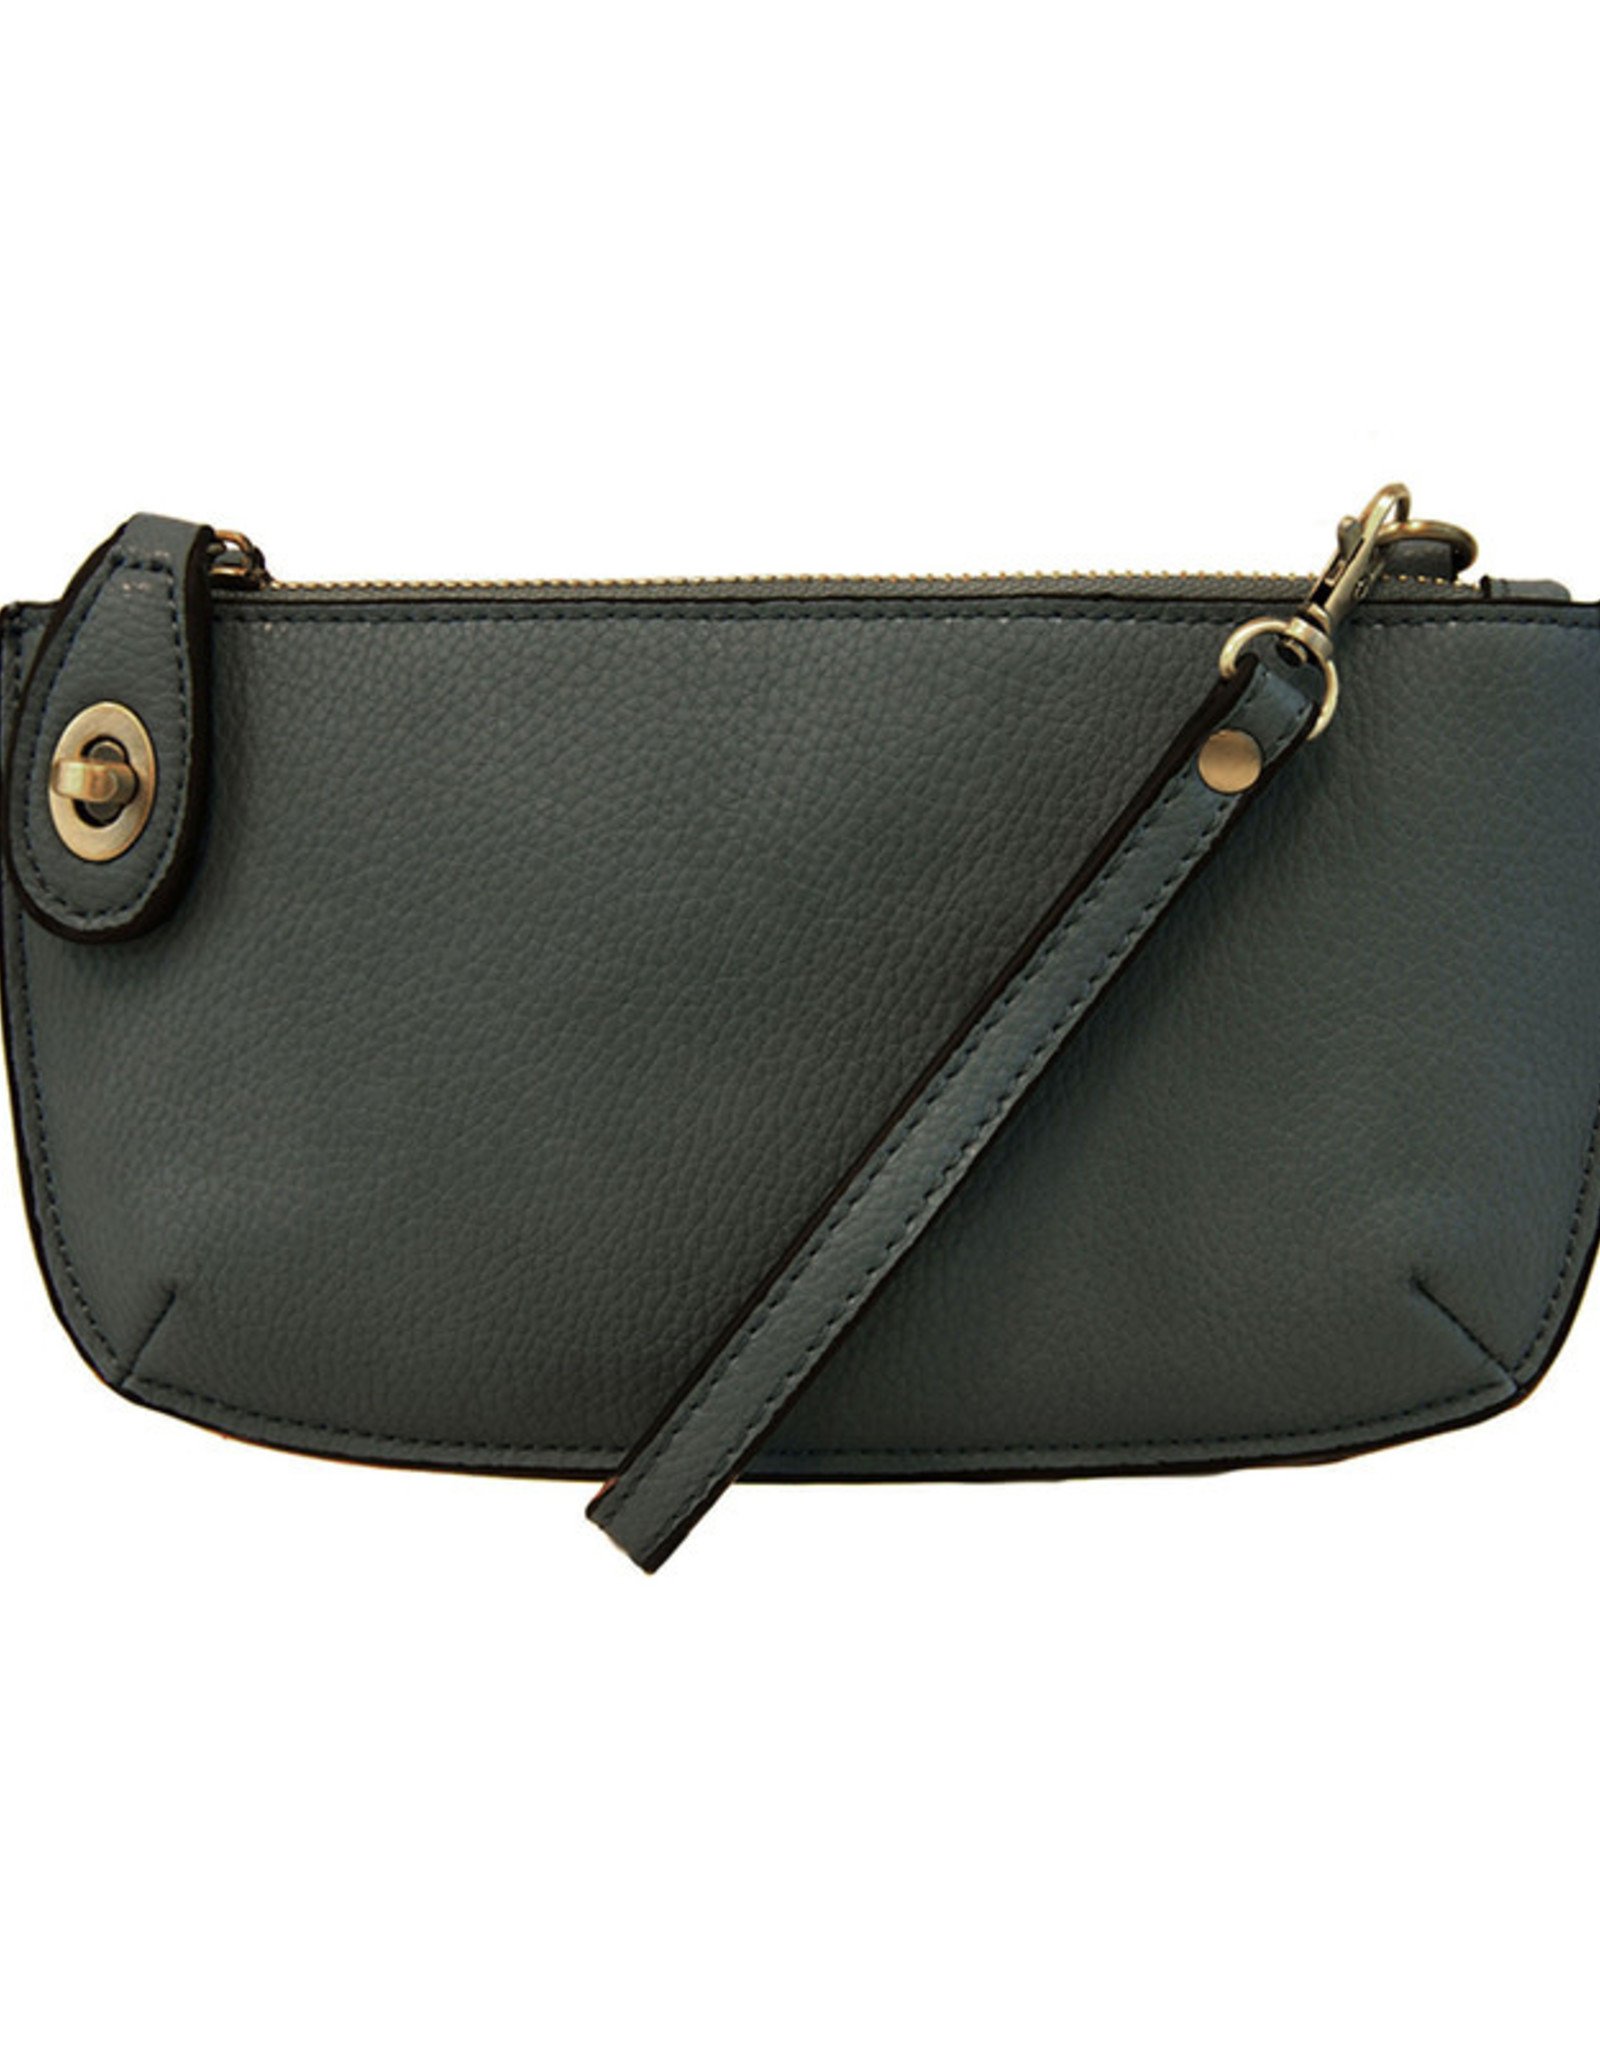 Joy Susan Dark Cyan Mini Crossbody Wristlet Clutch